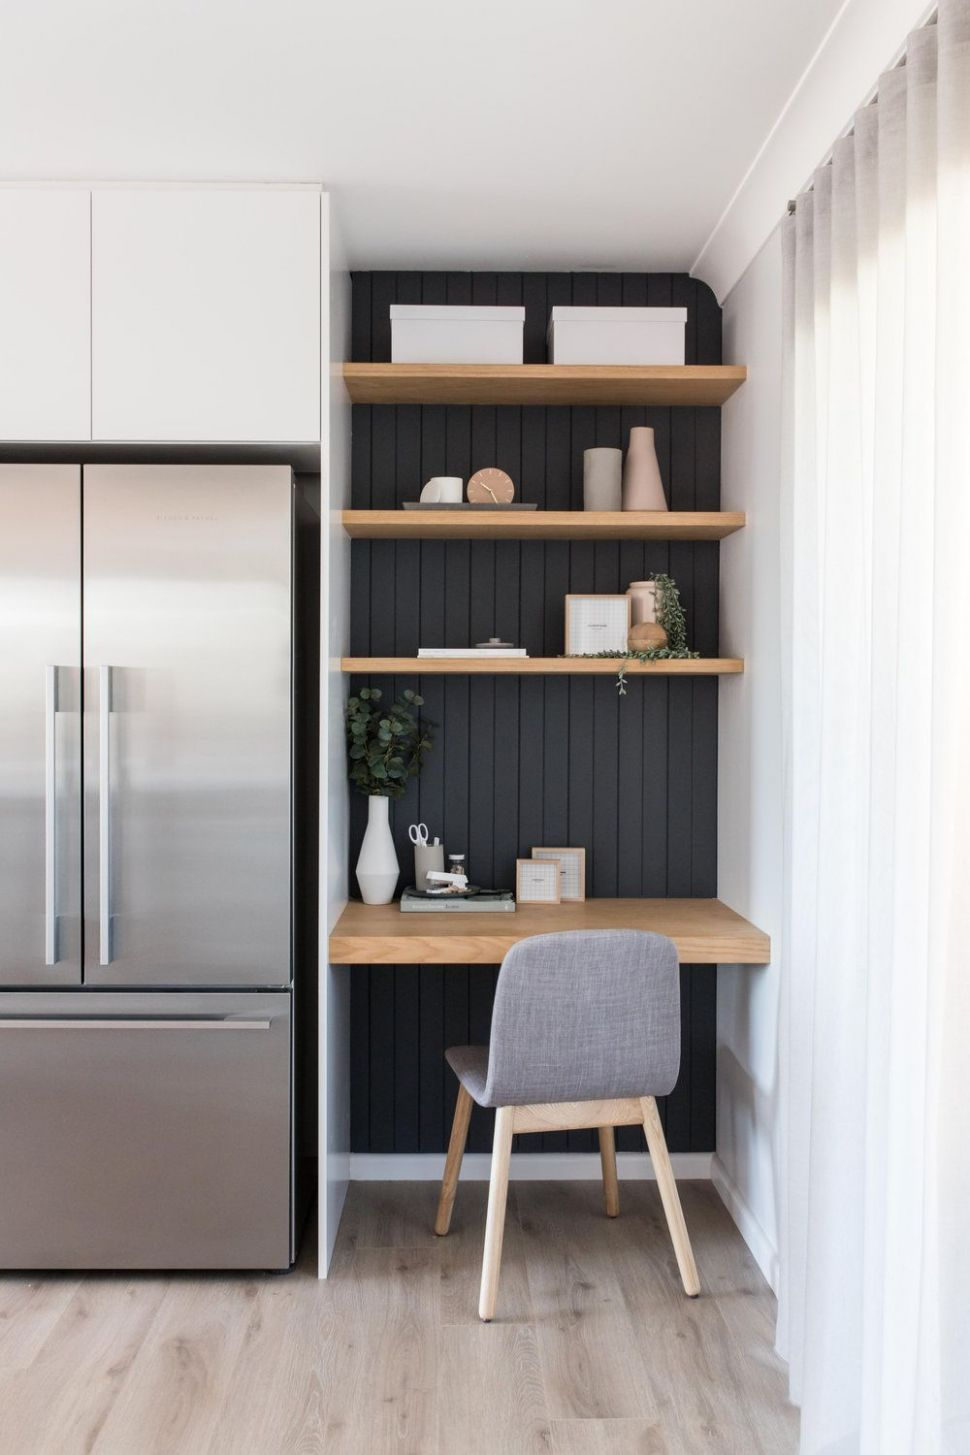 Jannali (With images) | Kitchen office nook, Small home offices ..